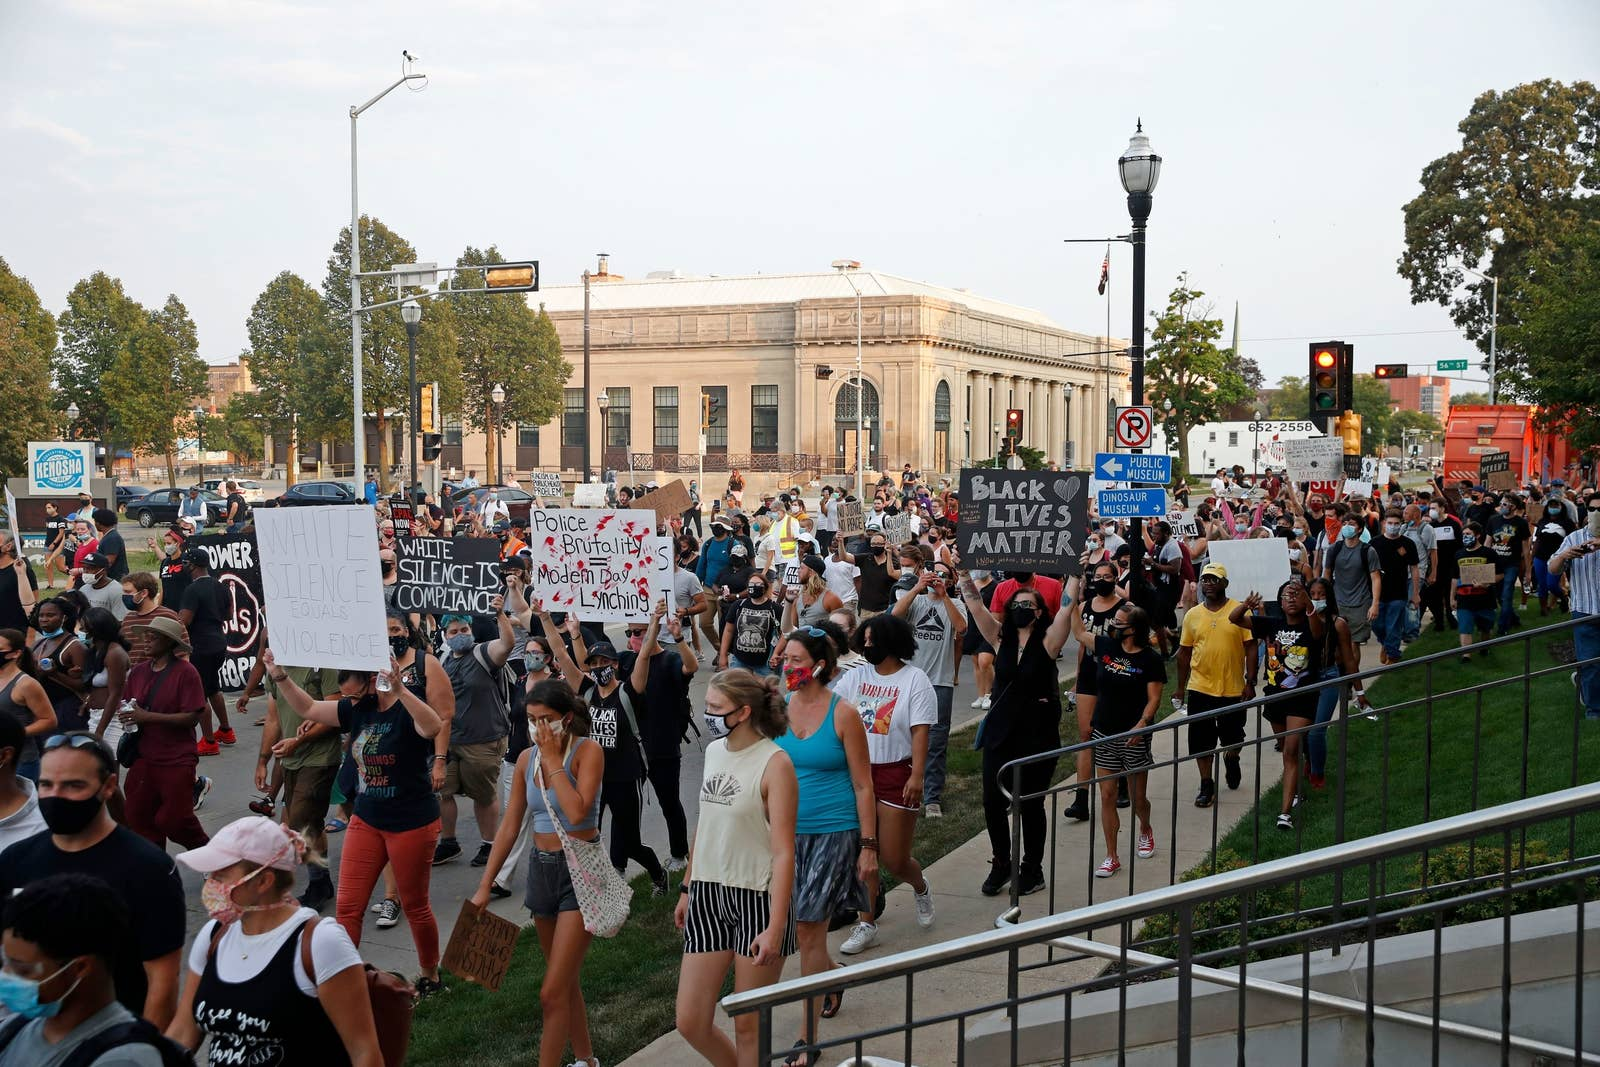 A large crowd of people walk down the street in the afternoon with signs